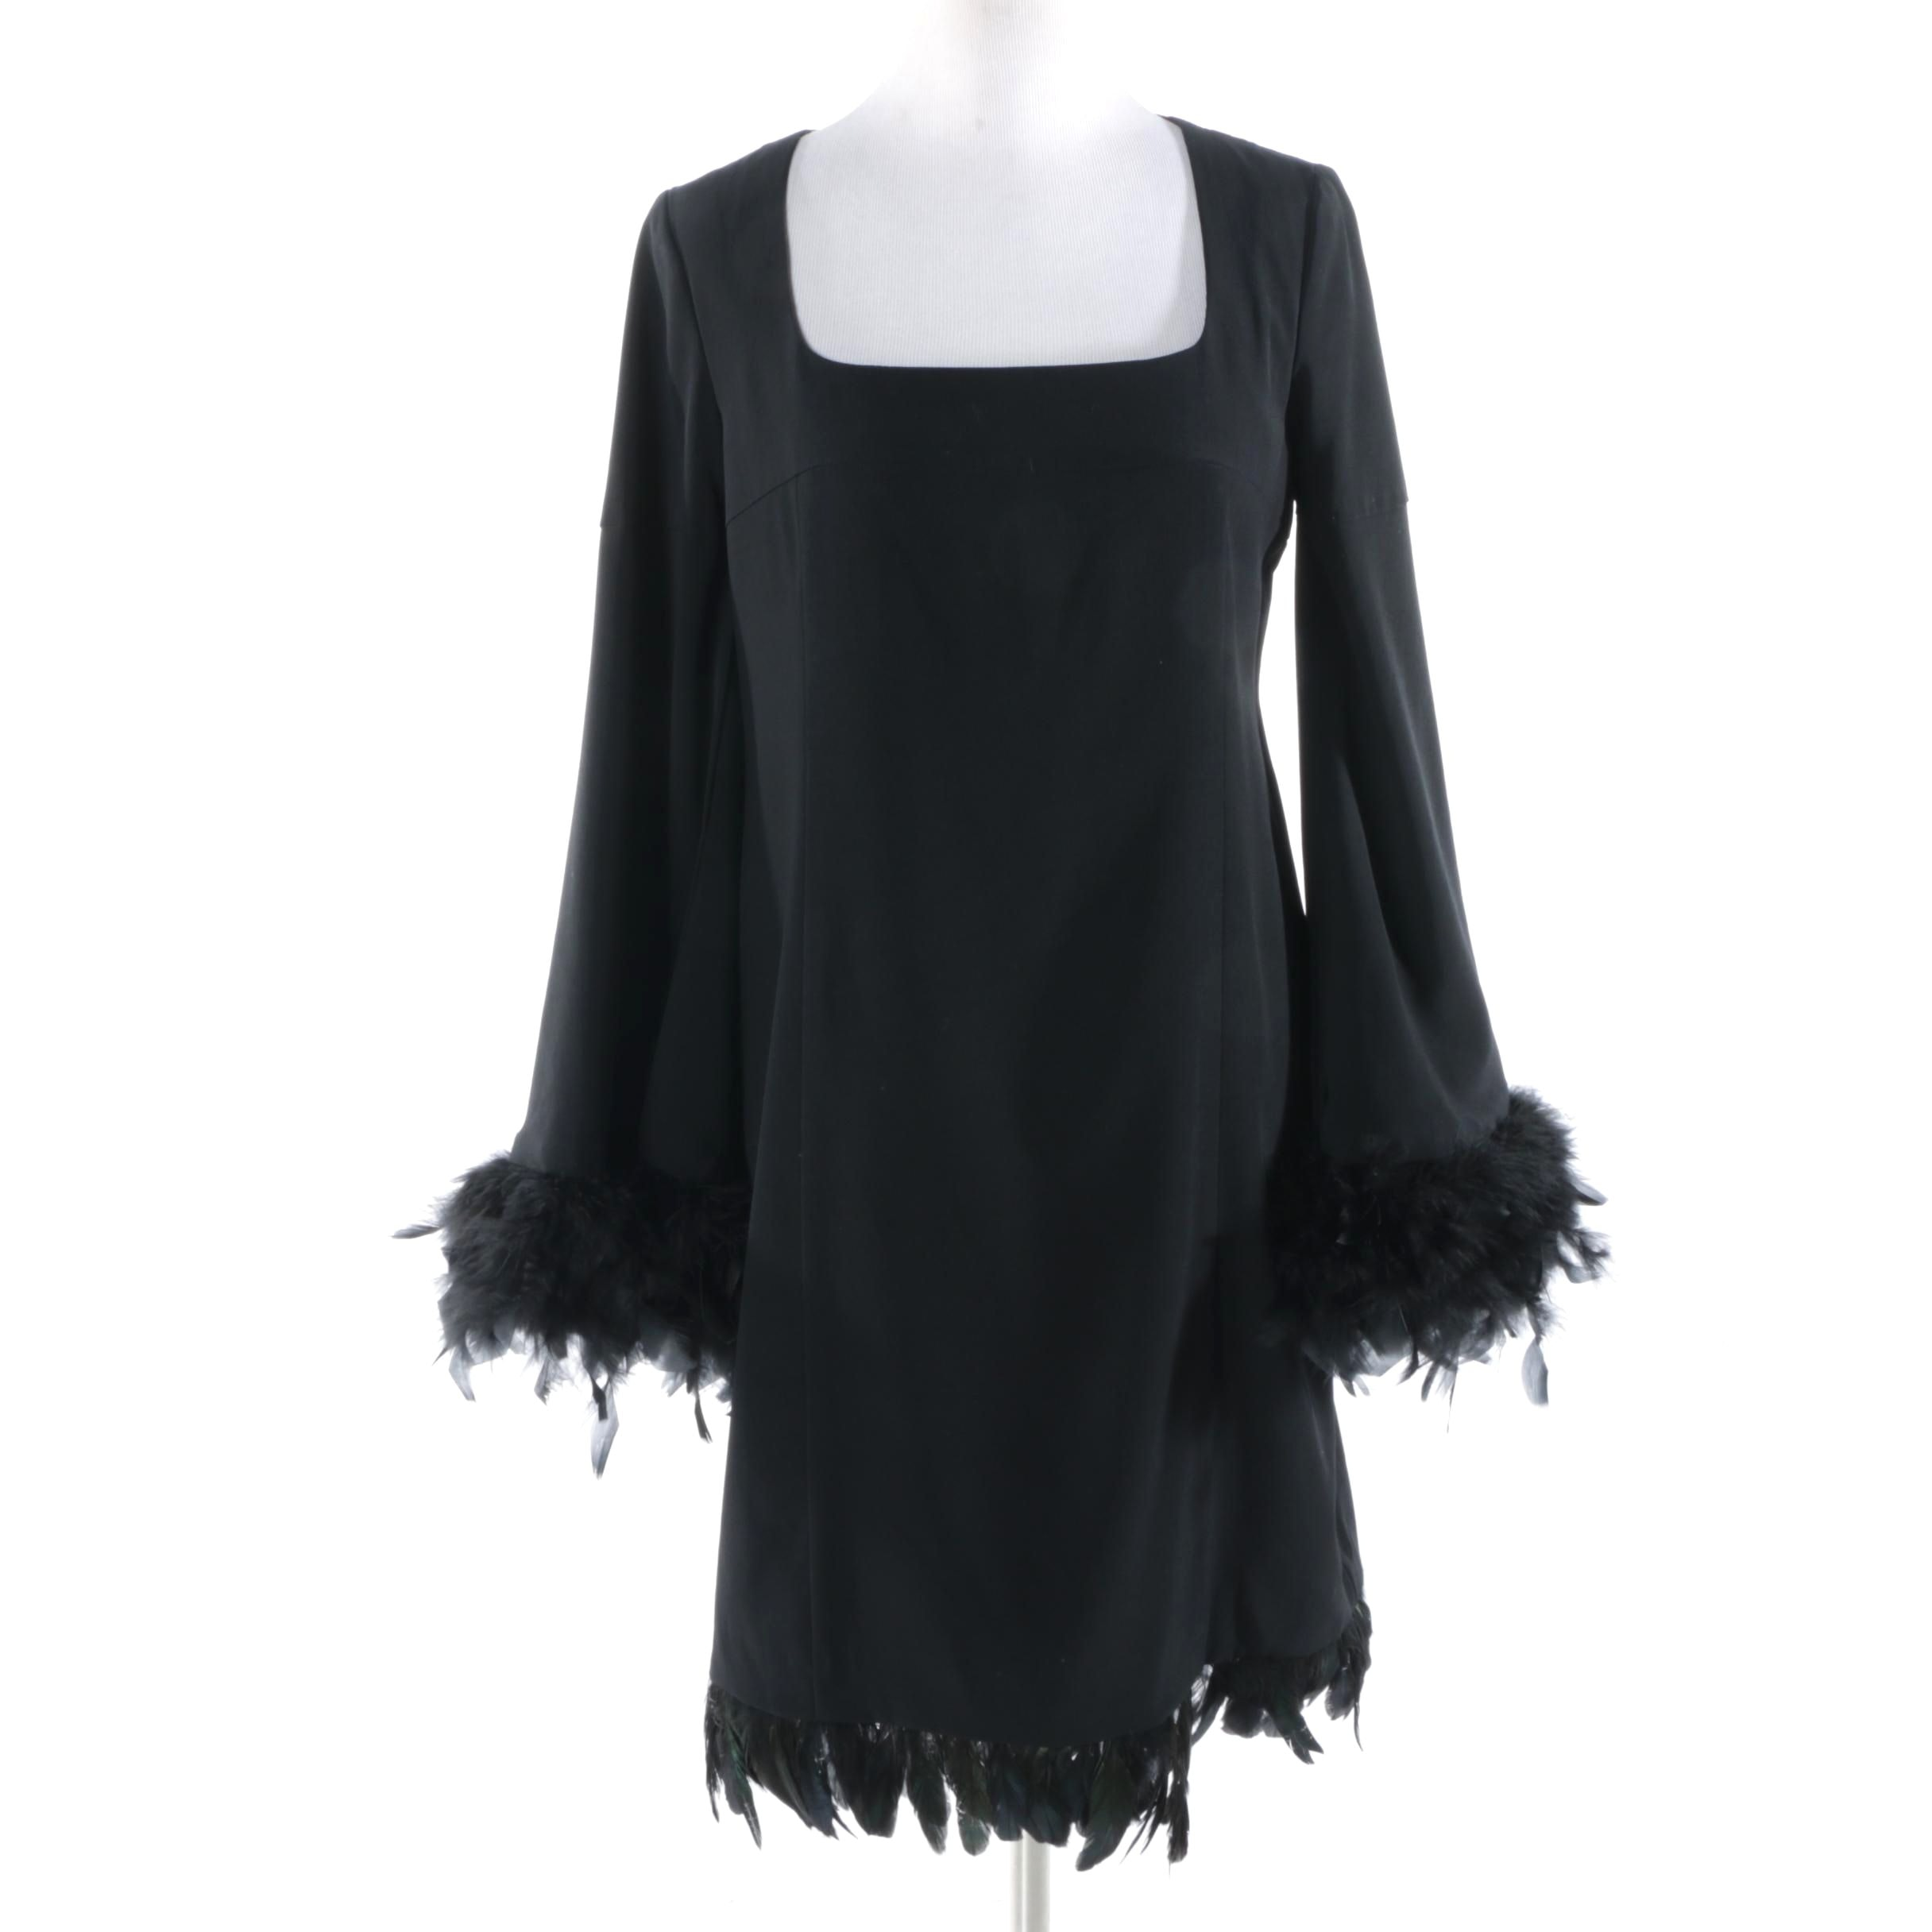 Nanette Lepore Black Cocktail Dress with Marabou and Hackle Feather Trim